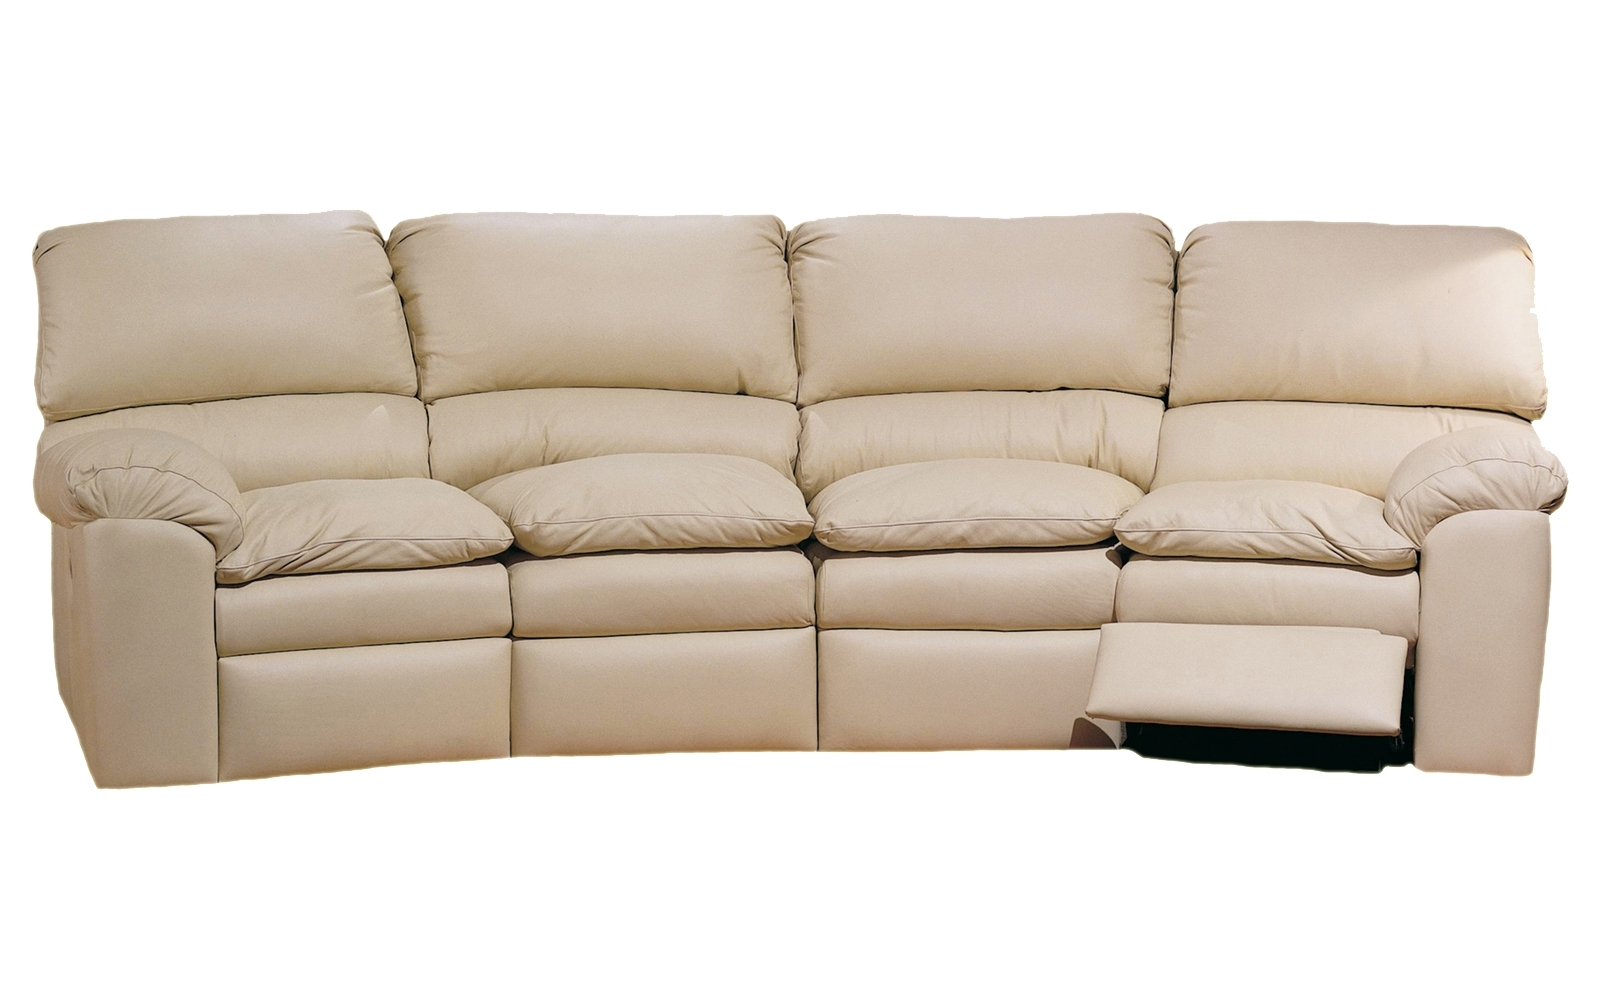 Catera 4 Seat Conversation Sofa – Omnia Leather Regarding Most Recently Released 4 Seat Sofas (View 5 of 15)